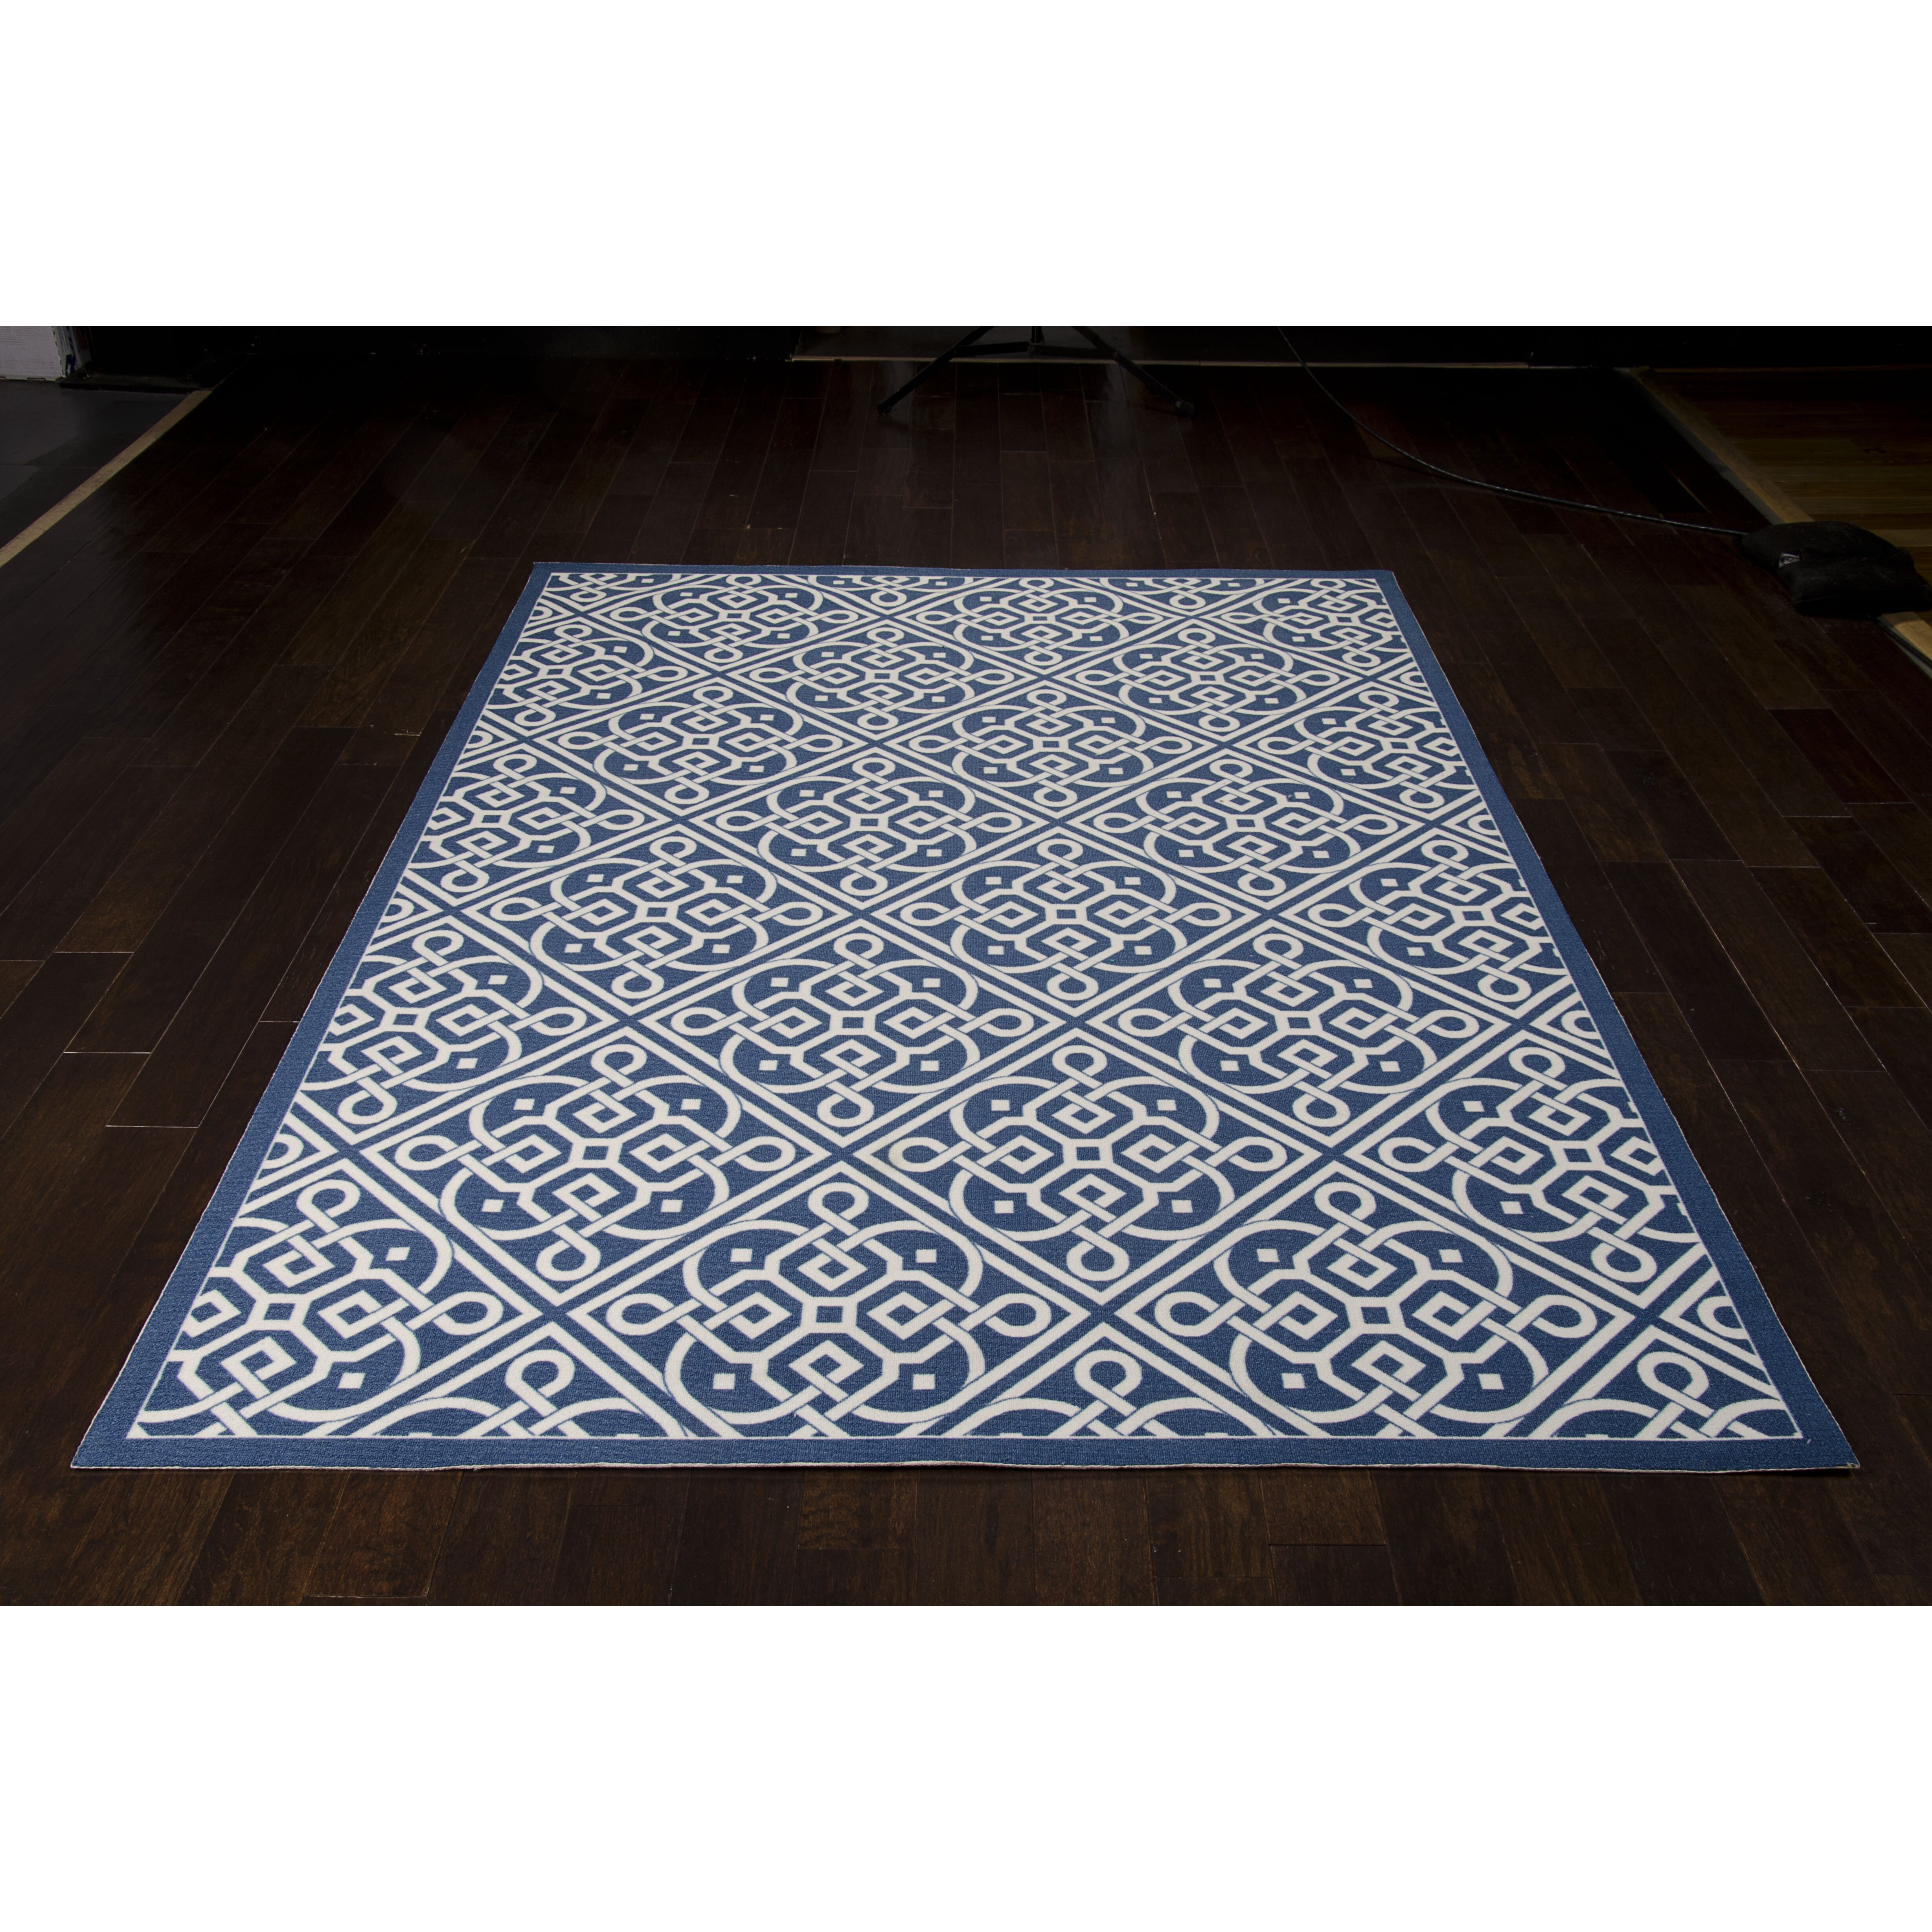 Waverly sun n 39 shade lace it up navy indoor outdoor area for Landscape indoor area rug